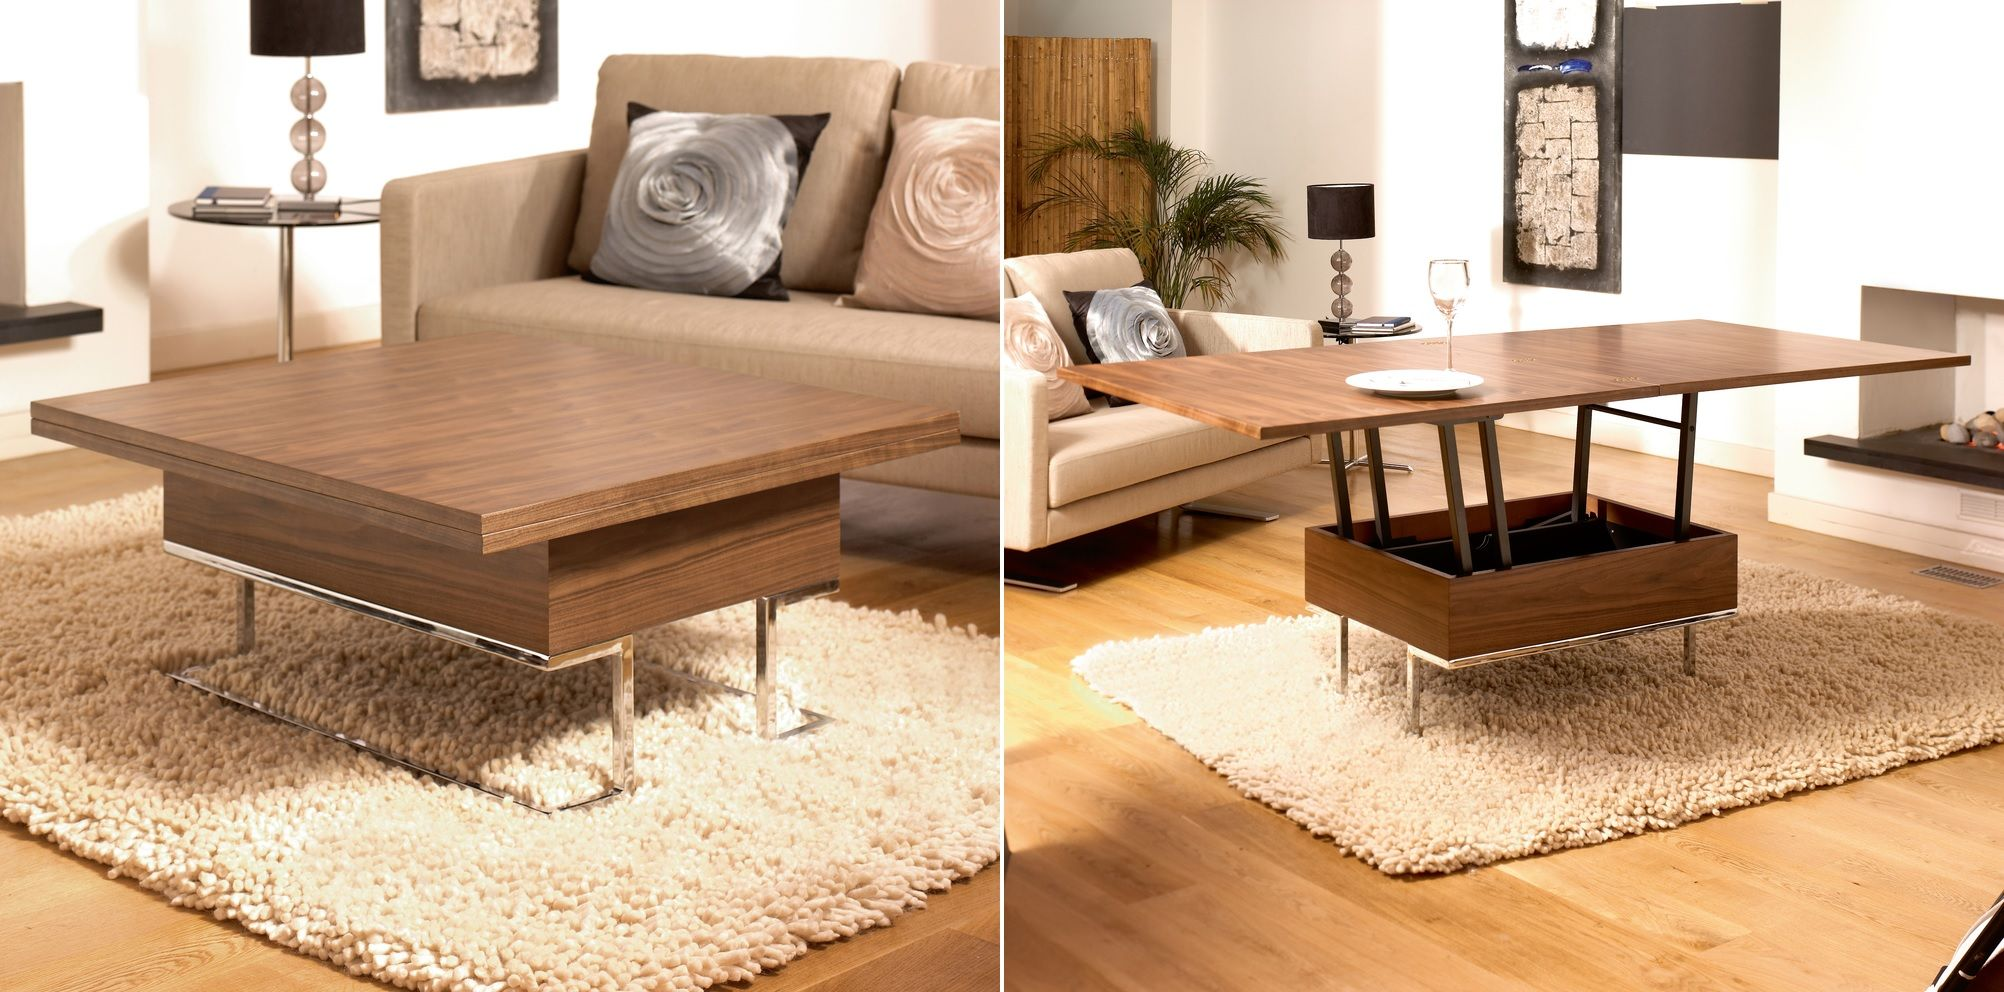 Coffee Table And Dining Table In One More Functions In A Compact Design Convertible Coffee Tables